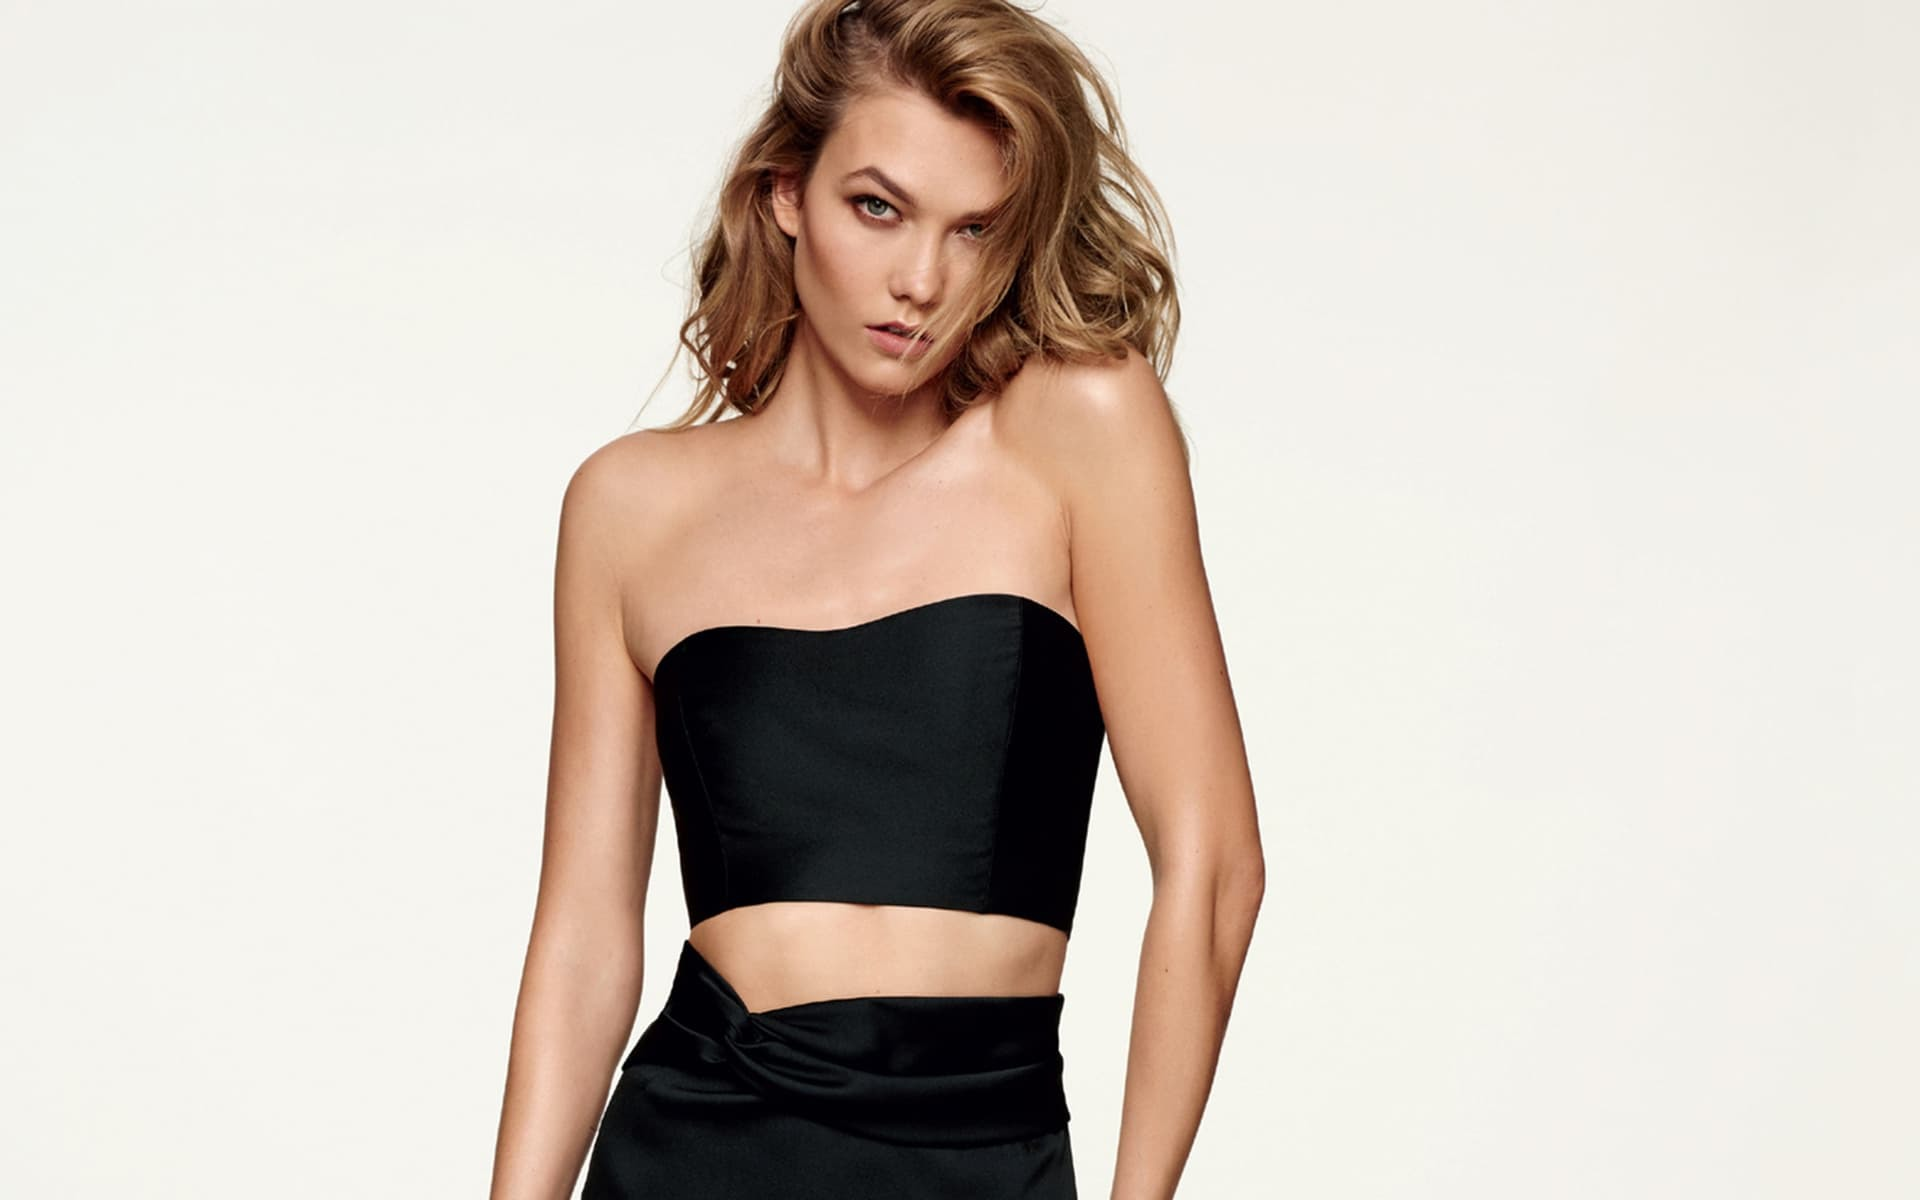 Karlie Kloss Wallpapers And Backgrounds